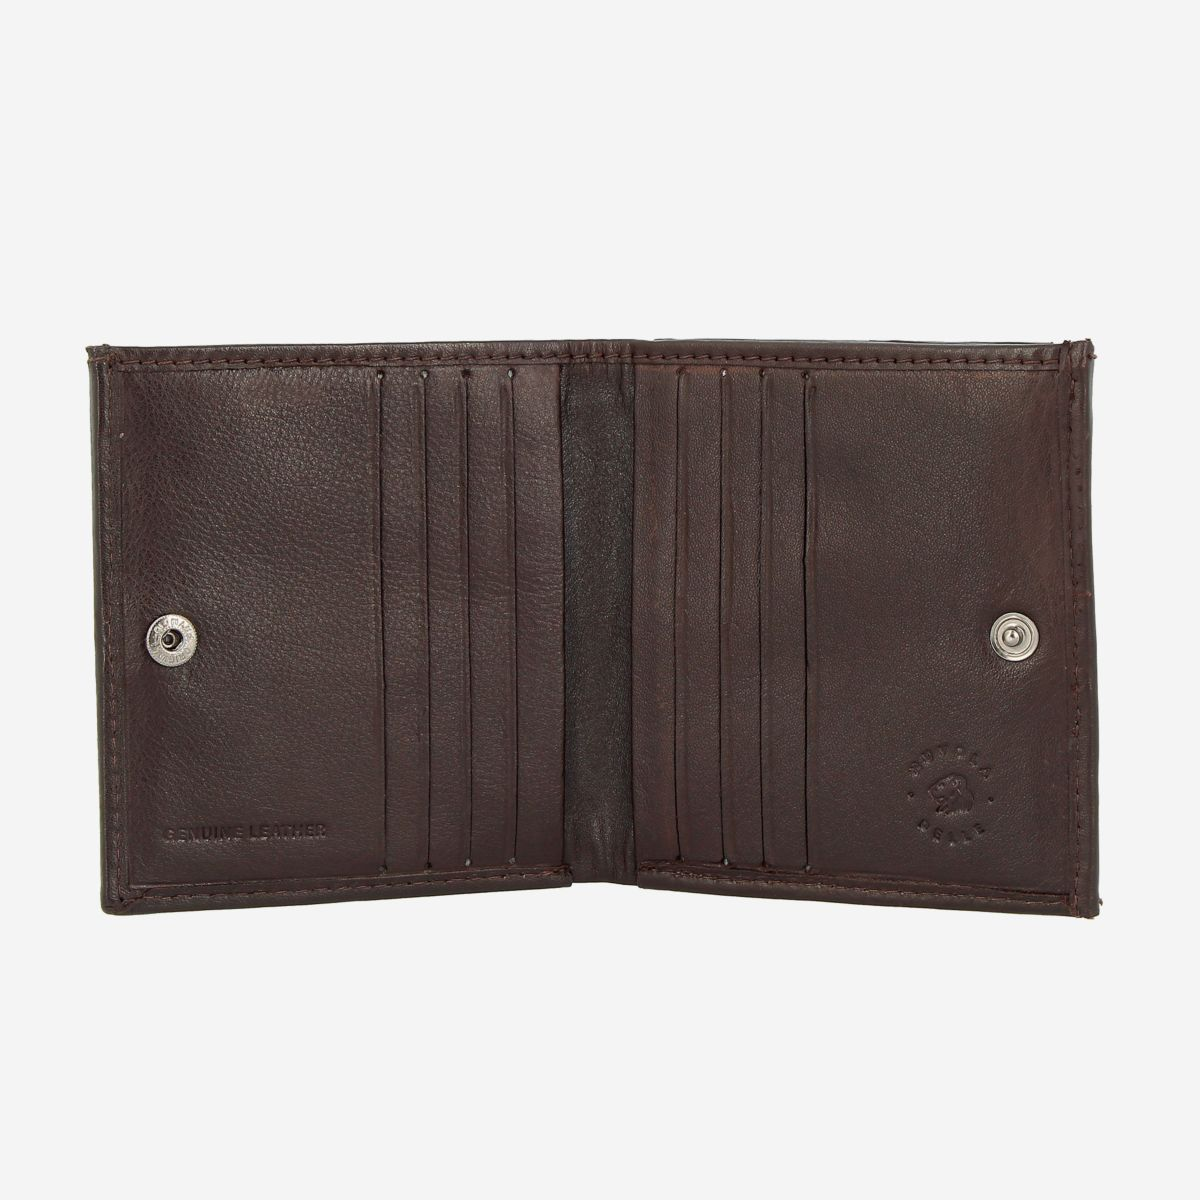 NUVOLA PELLE Small Unique Leather Wallet  - Dark Brown